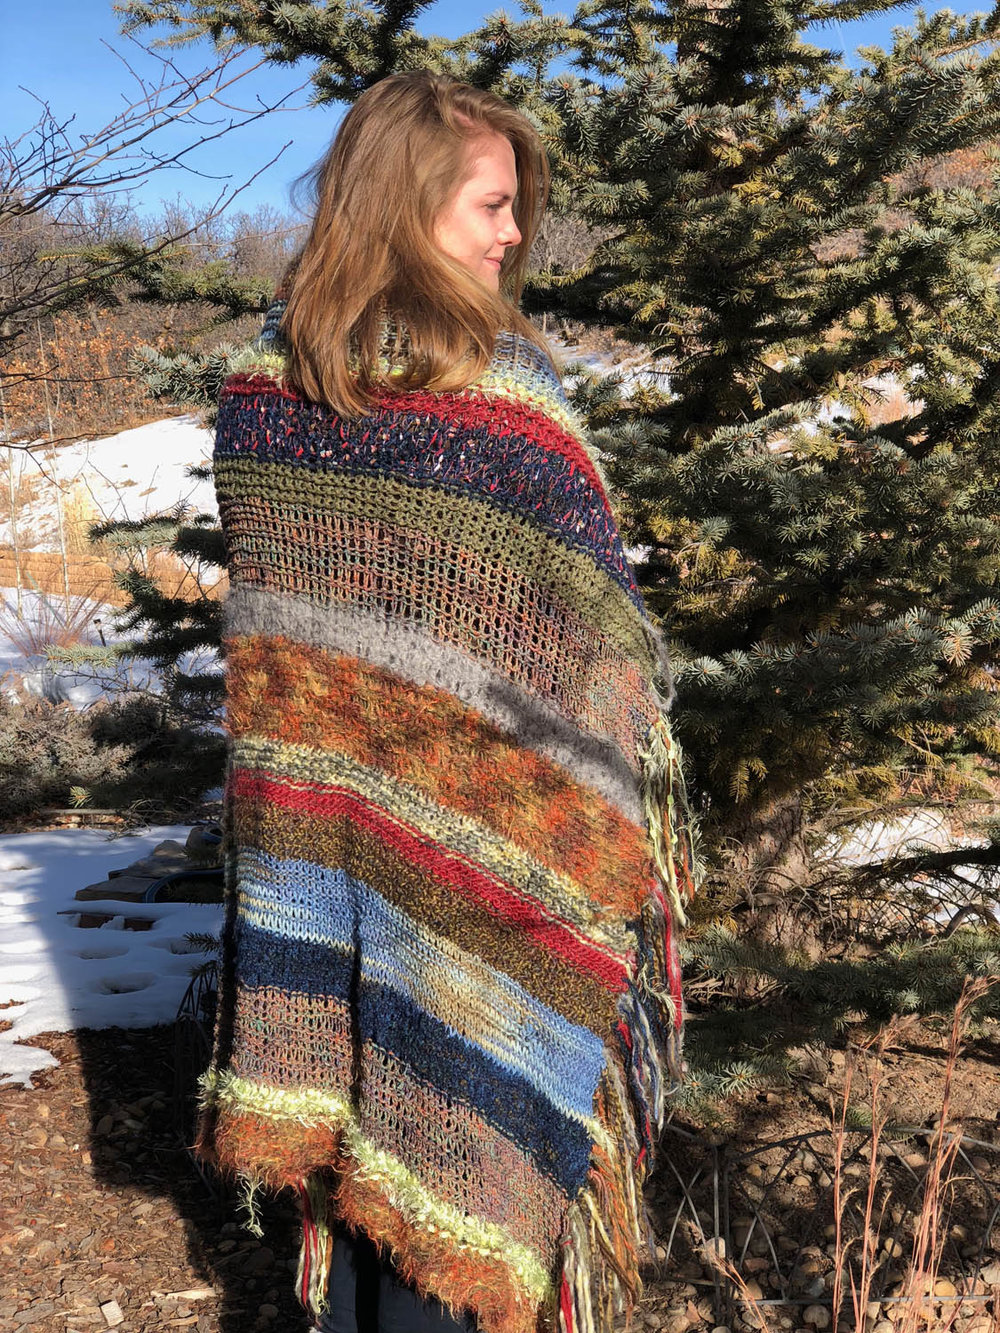 Model wearing scrap-yarn knitted throw as a shawl outside by pine tree in snow.